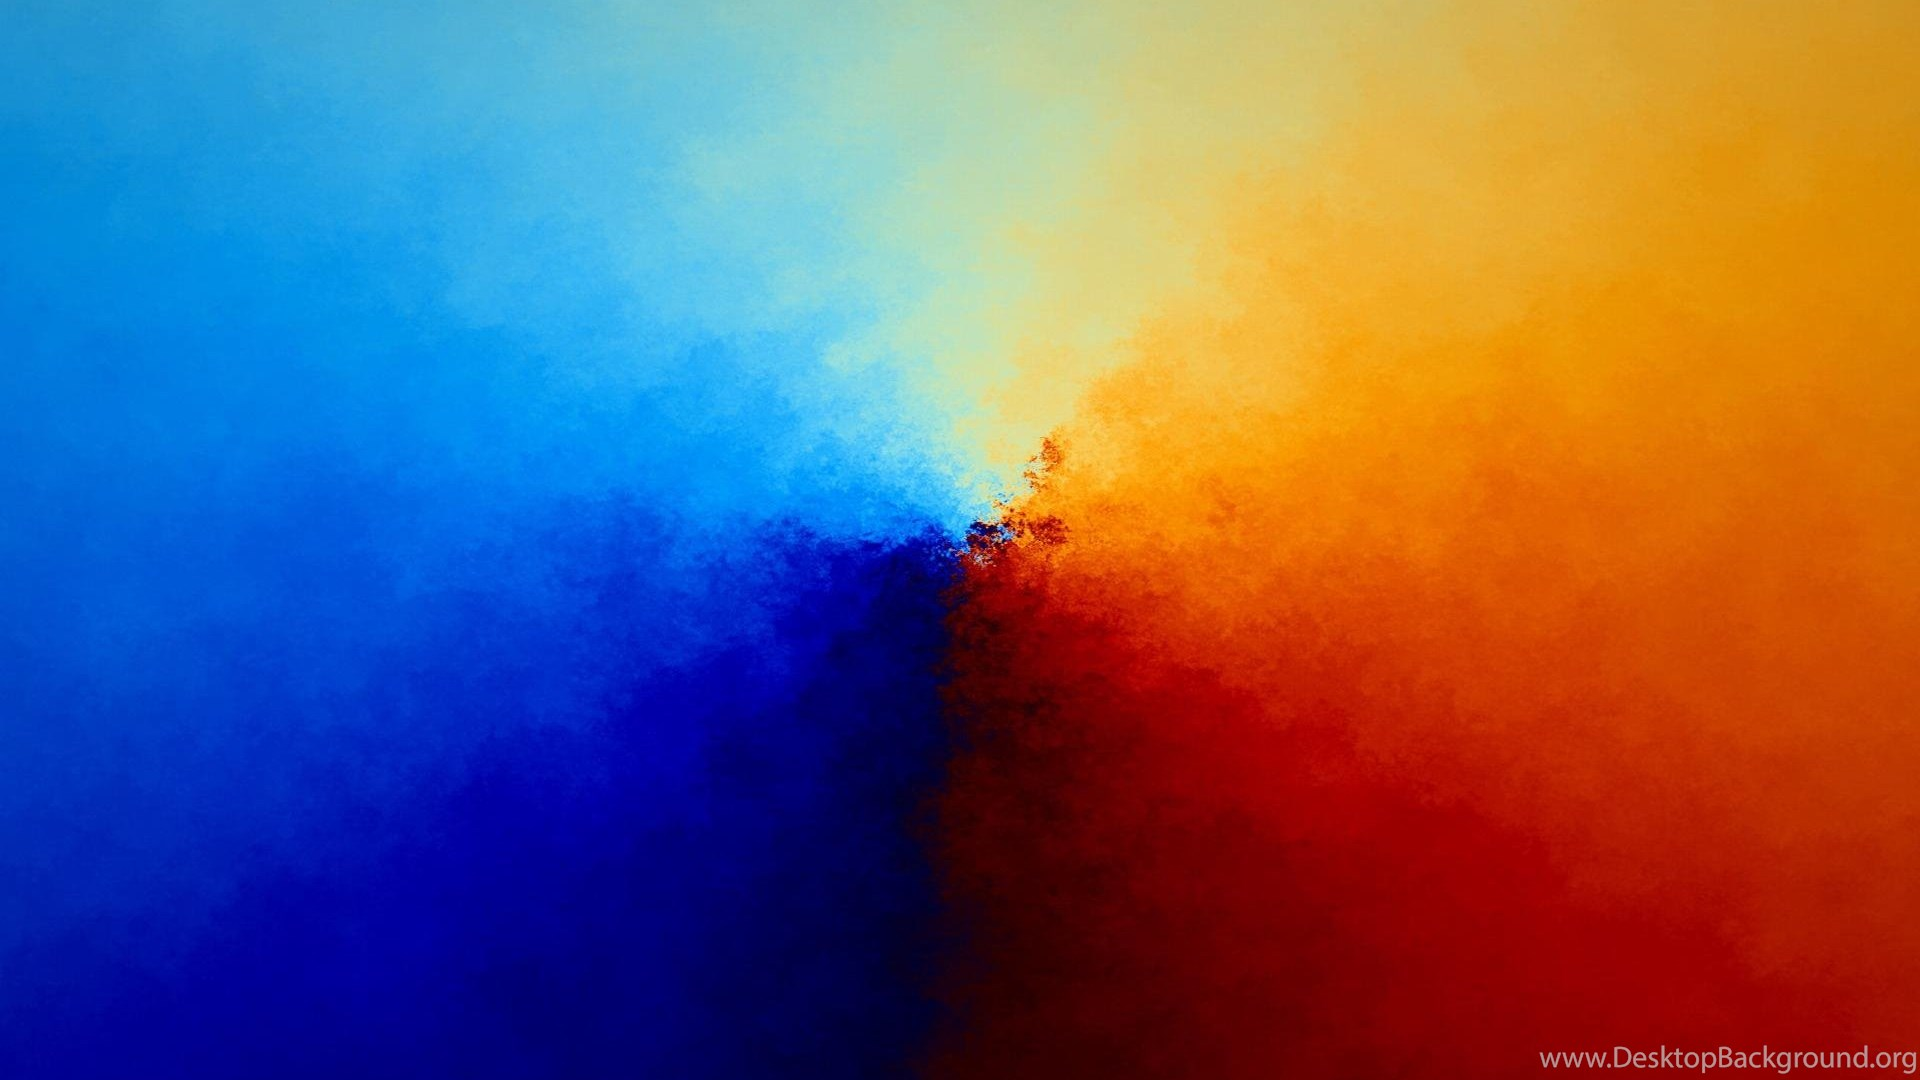 Color Mix Wallpaper,orange HD Wallpaper,blur HD Wallpaper